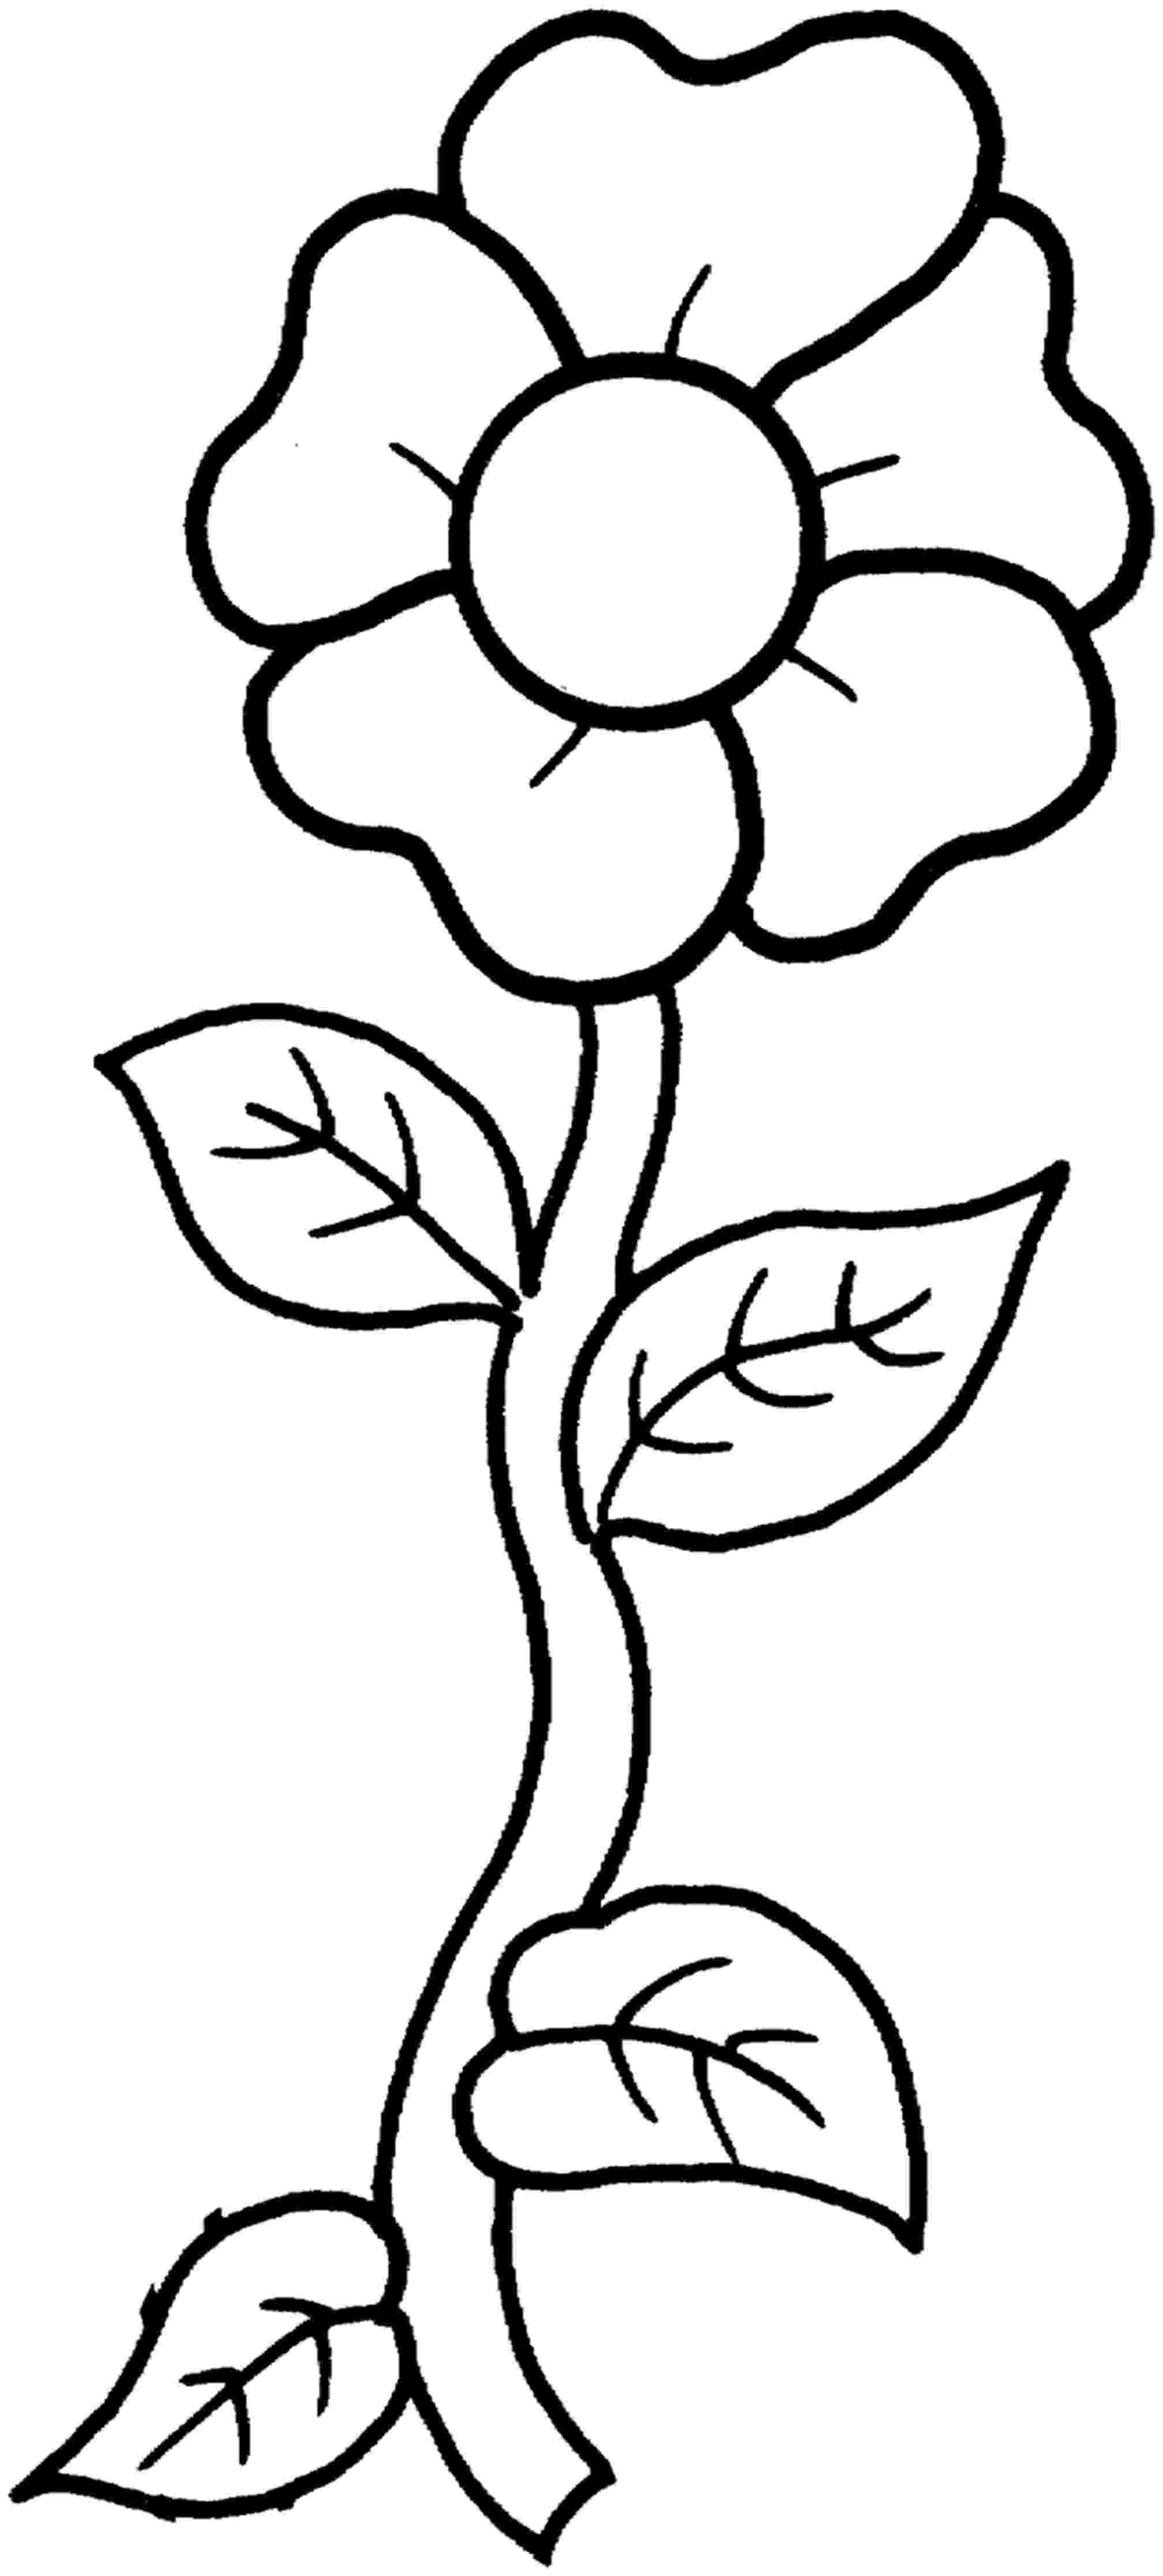 free printable coloring pages for children free printable pinocchio coloring pages for kids printable free coloring pages for children